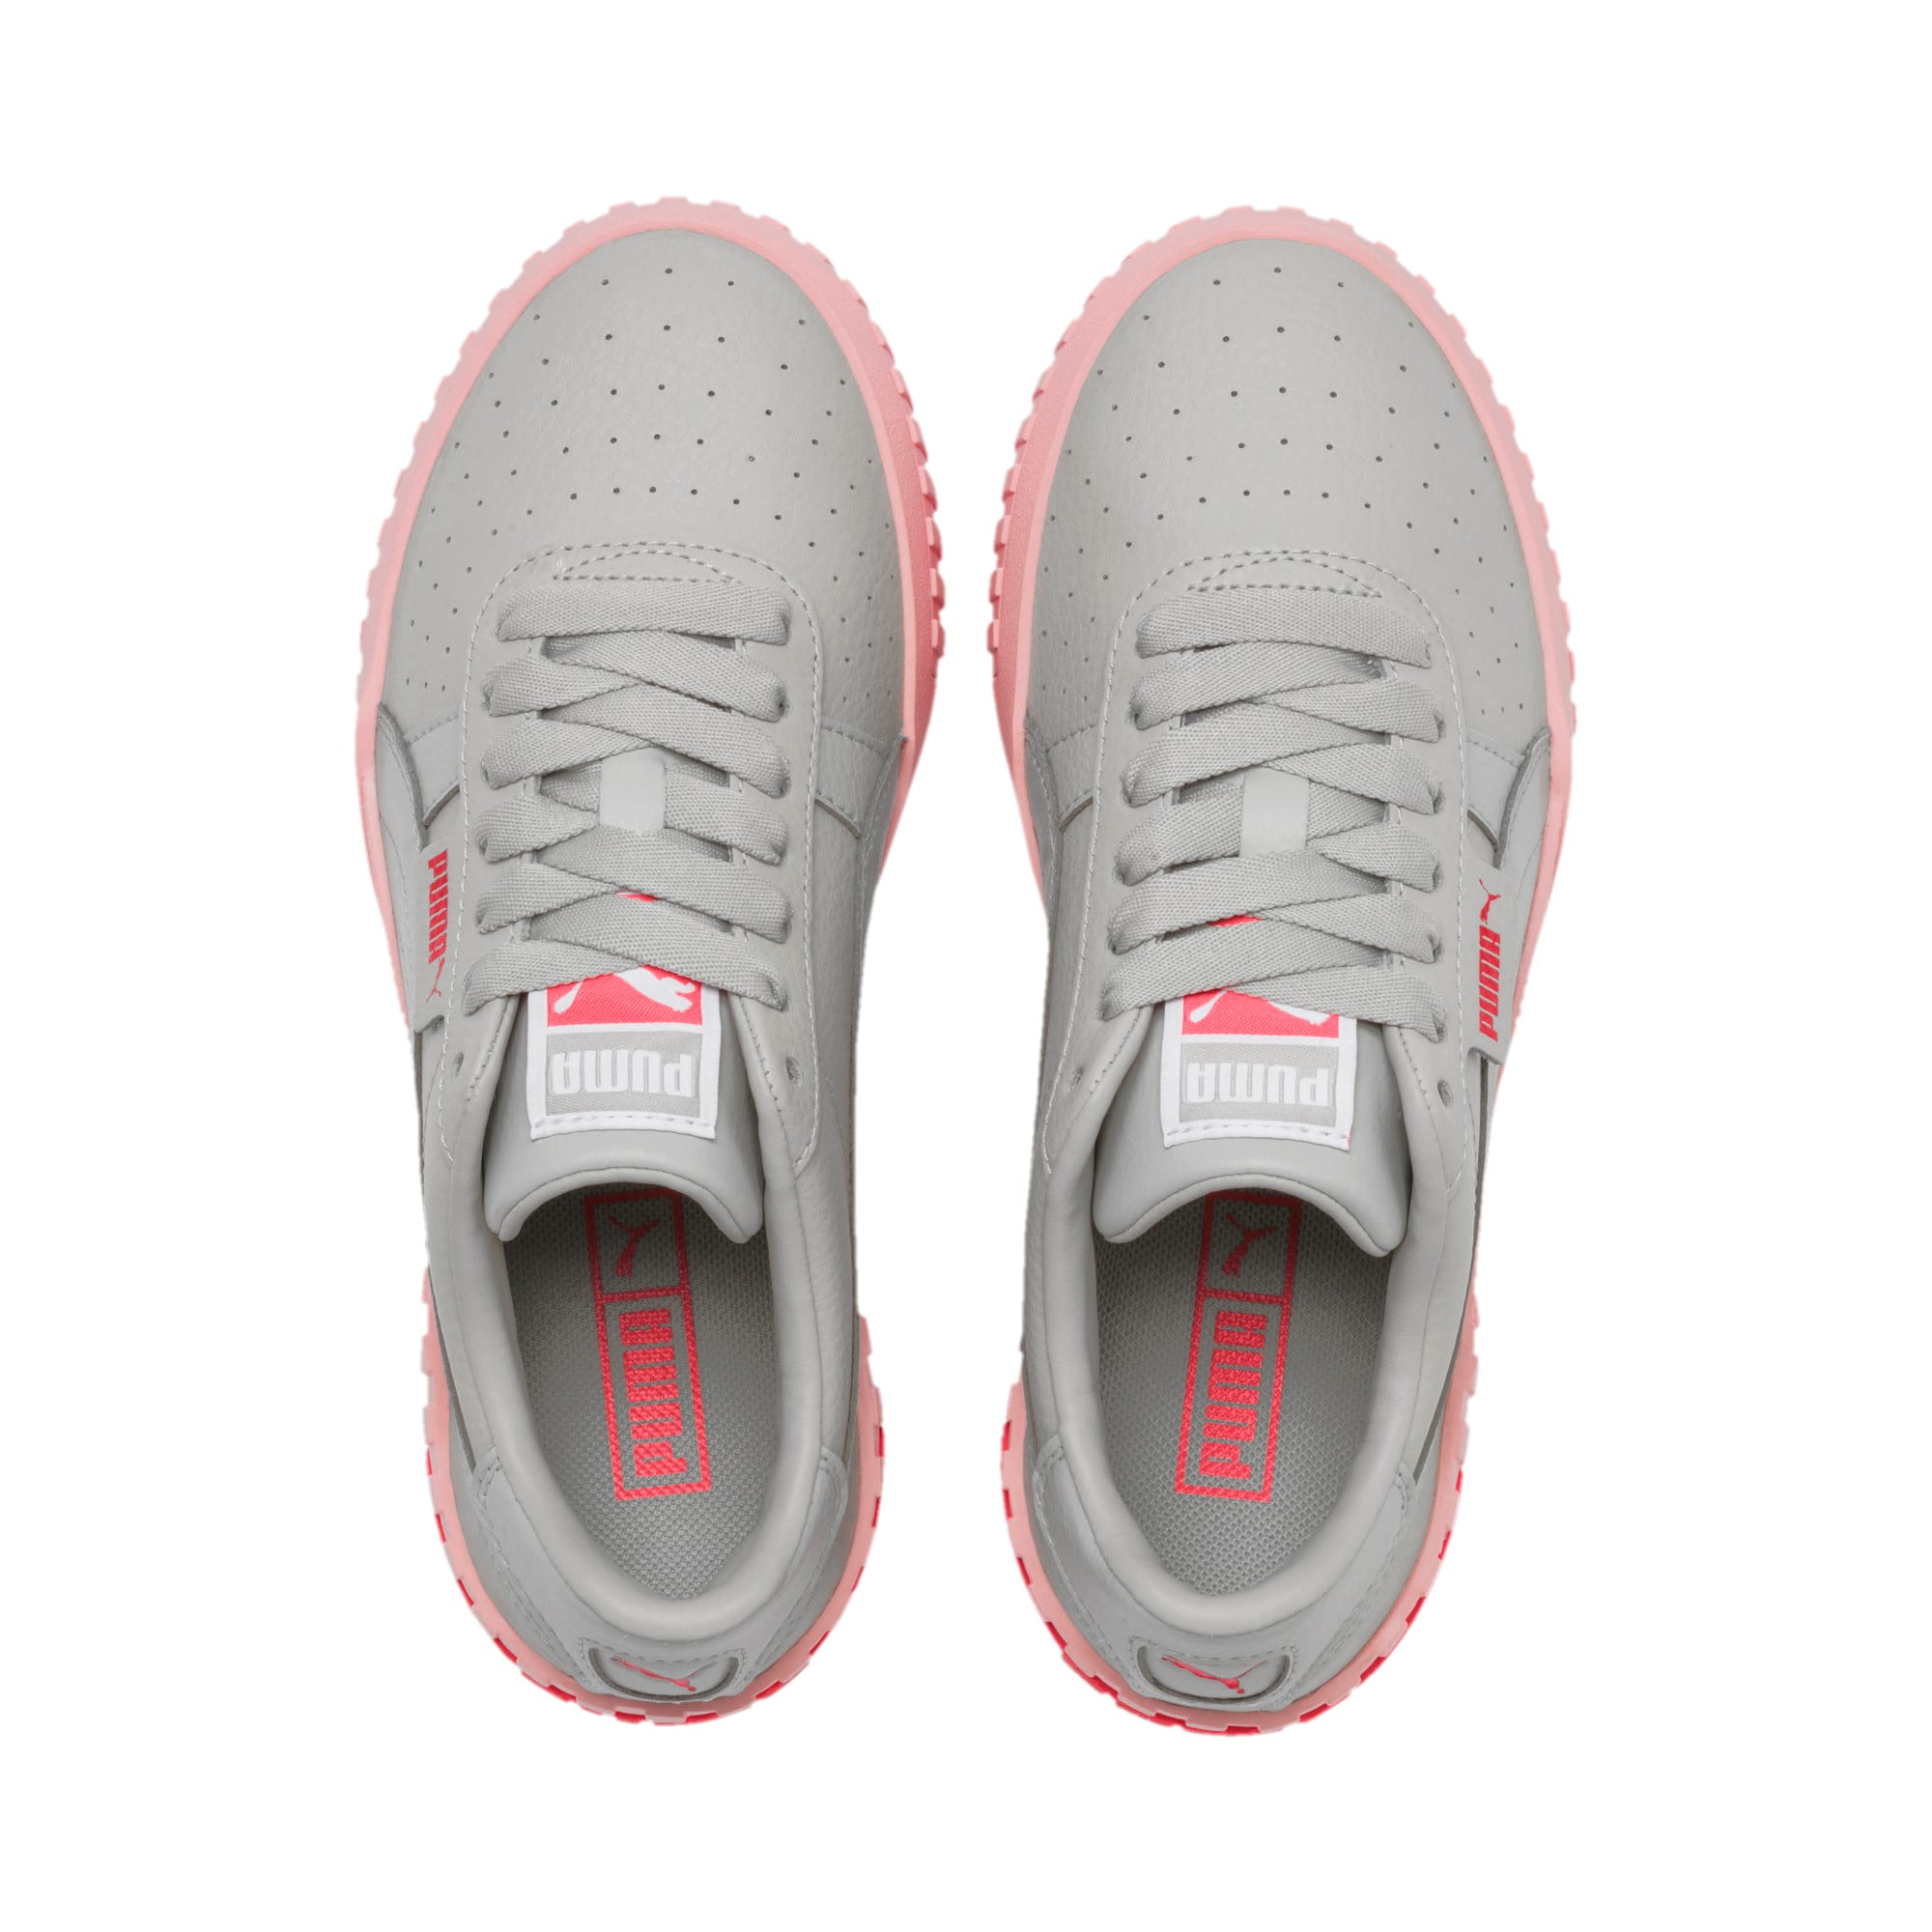 Thumbnail 6 of Cali Youth Trainers, Gray Violet-Calypso Coral, medium